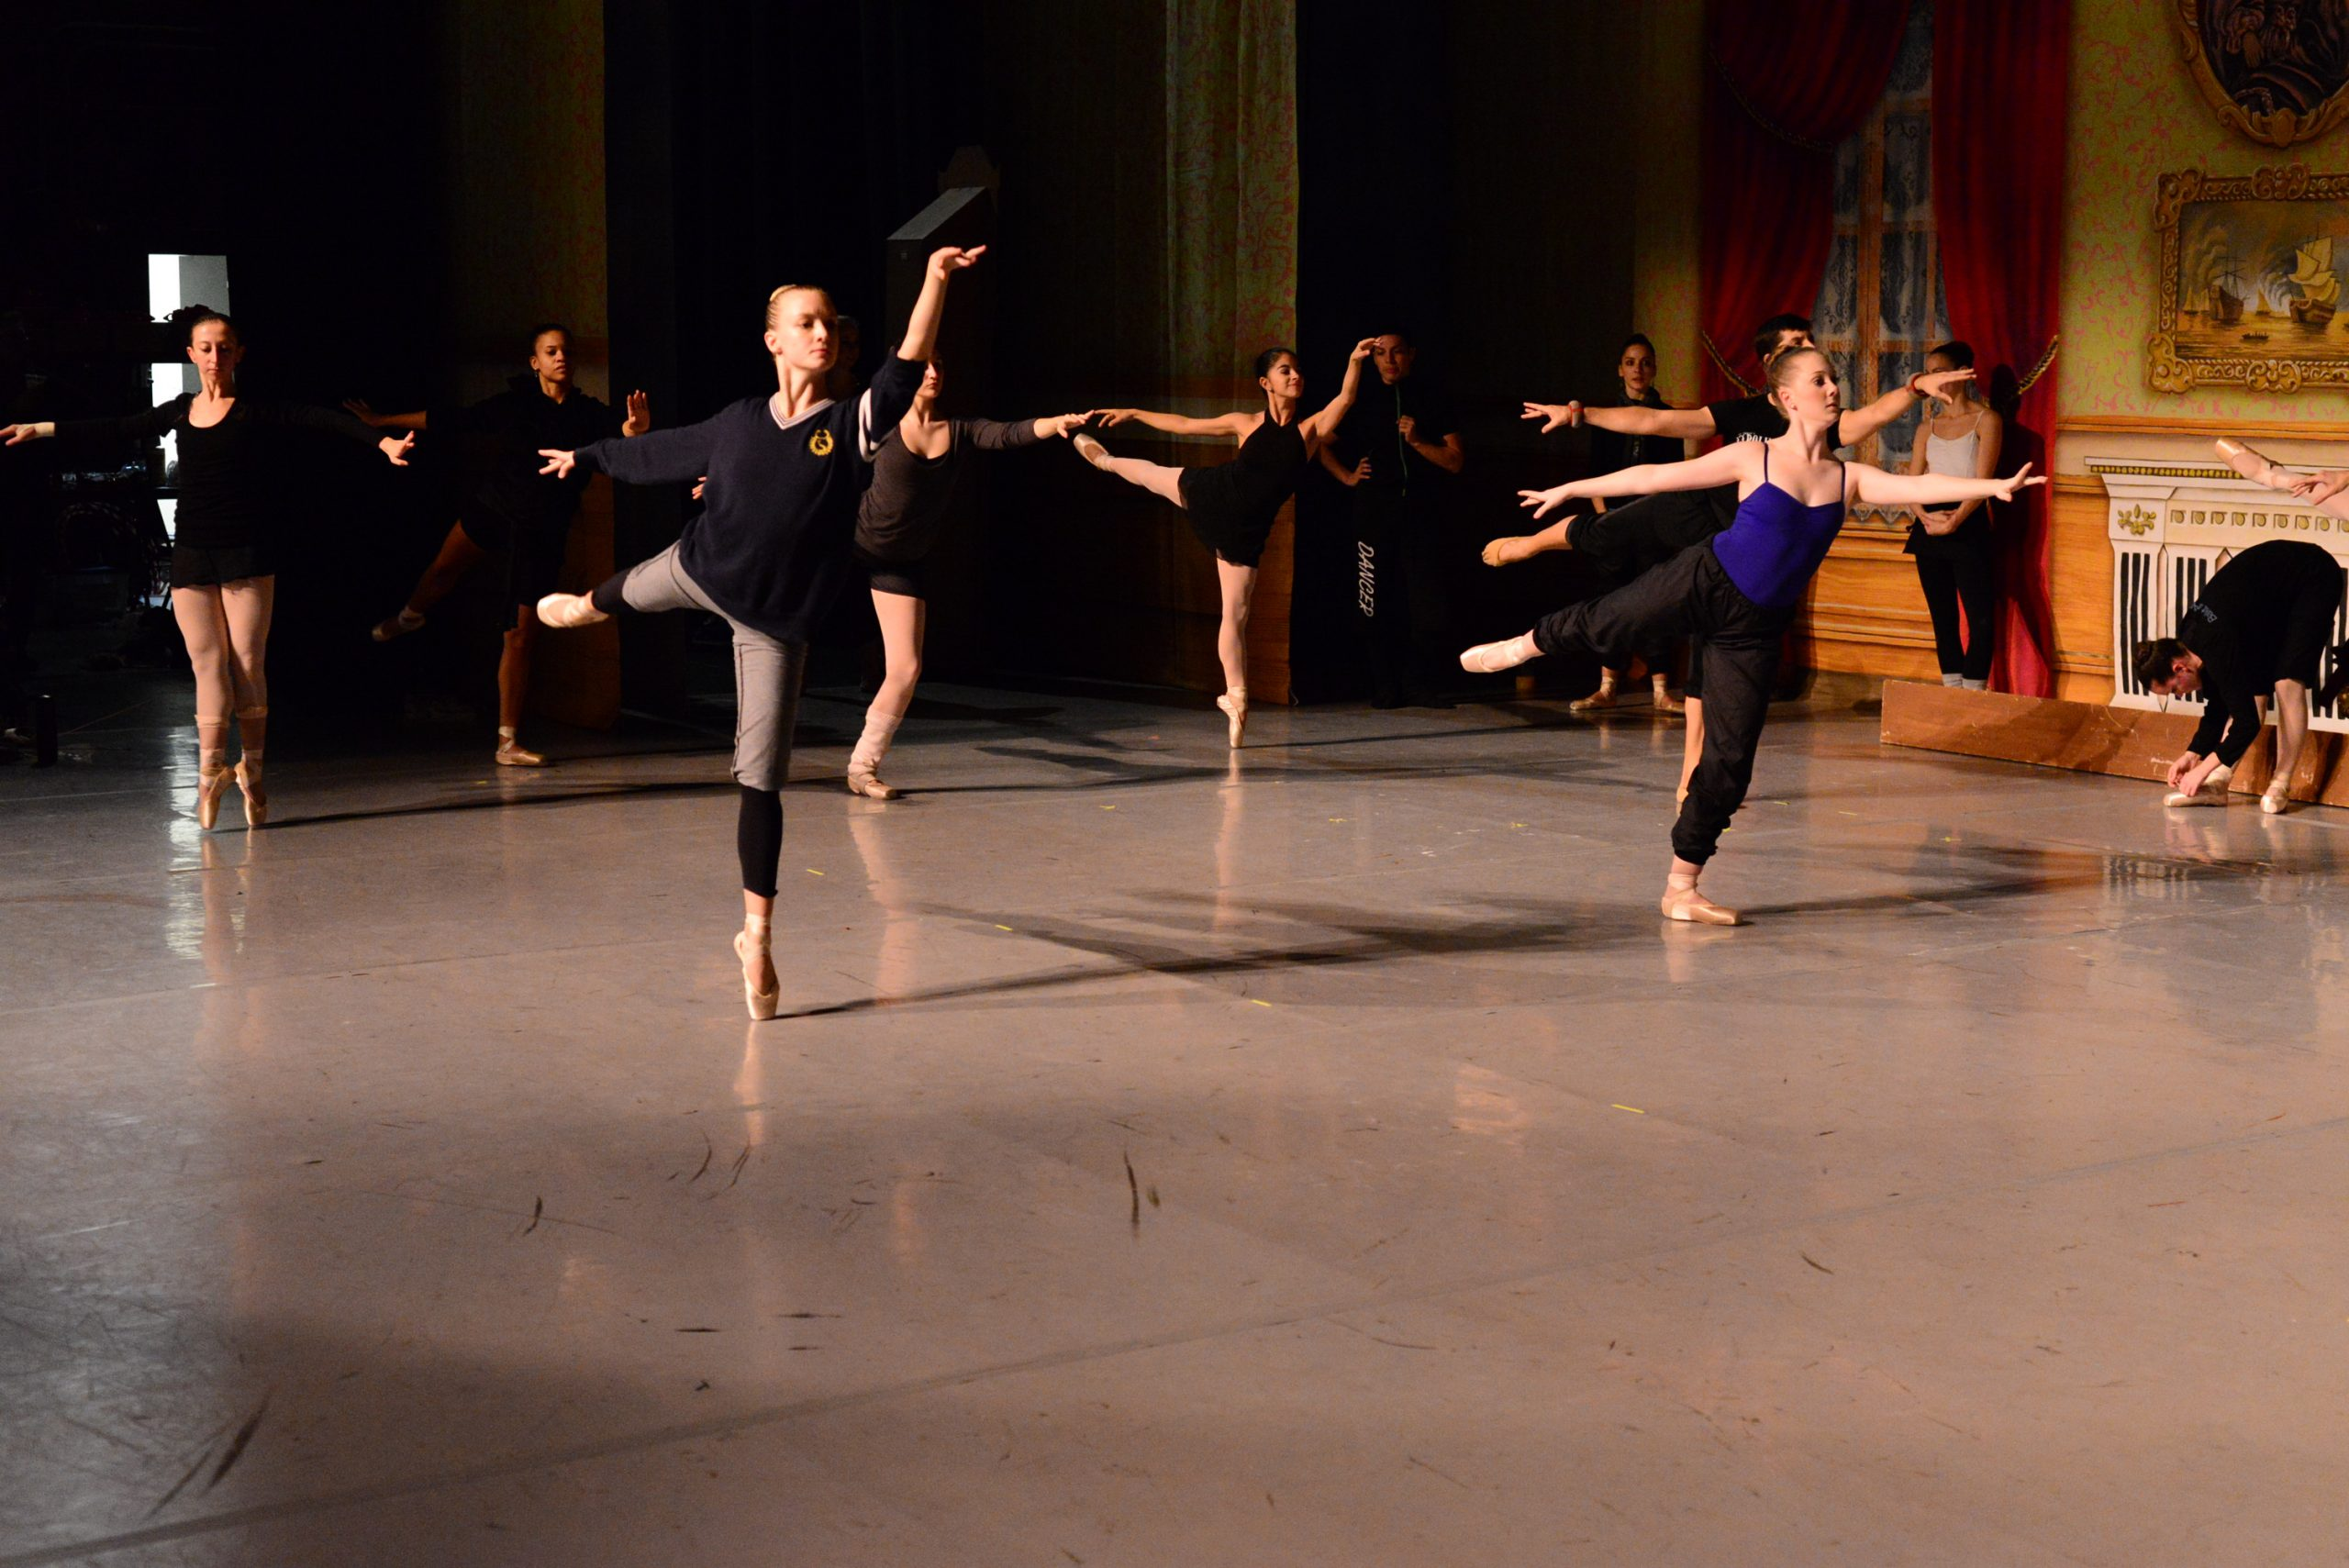 """Backstage at the Majestic with Ballet San Antonio during """"The Nutcracker"""" dress rehearsal. Photo by Page Graham."""